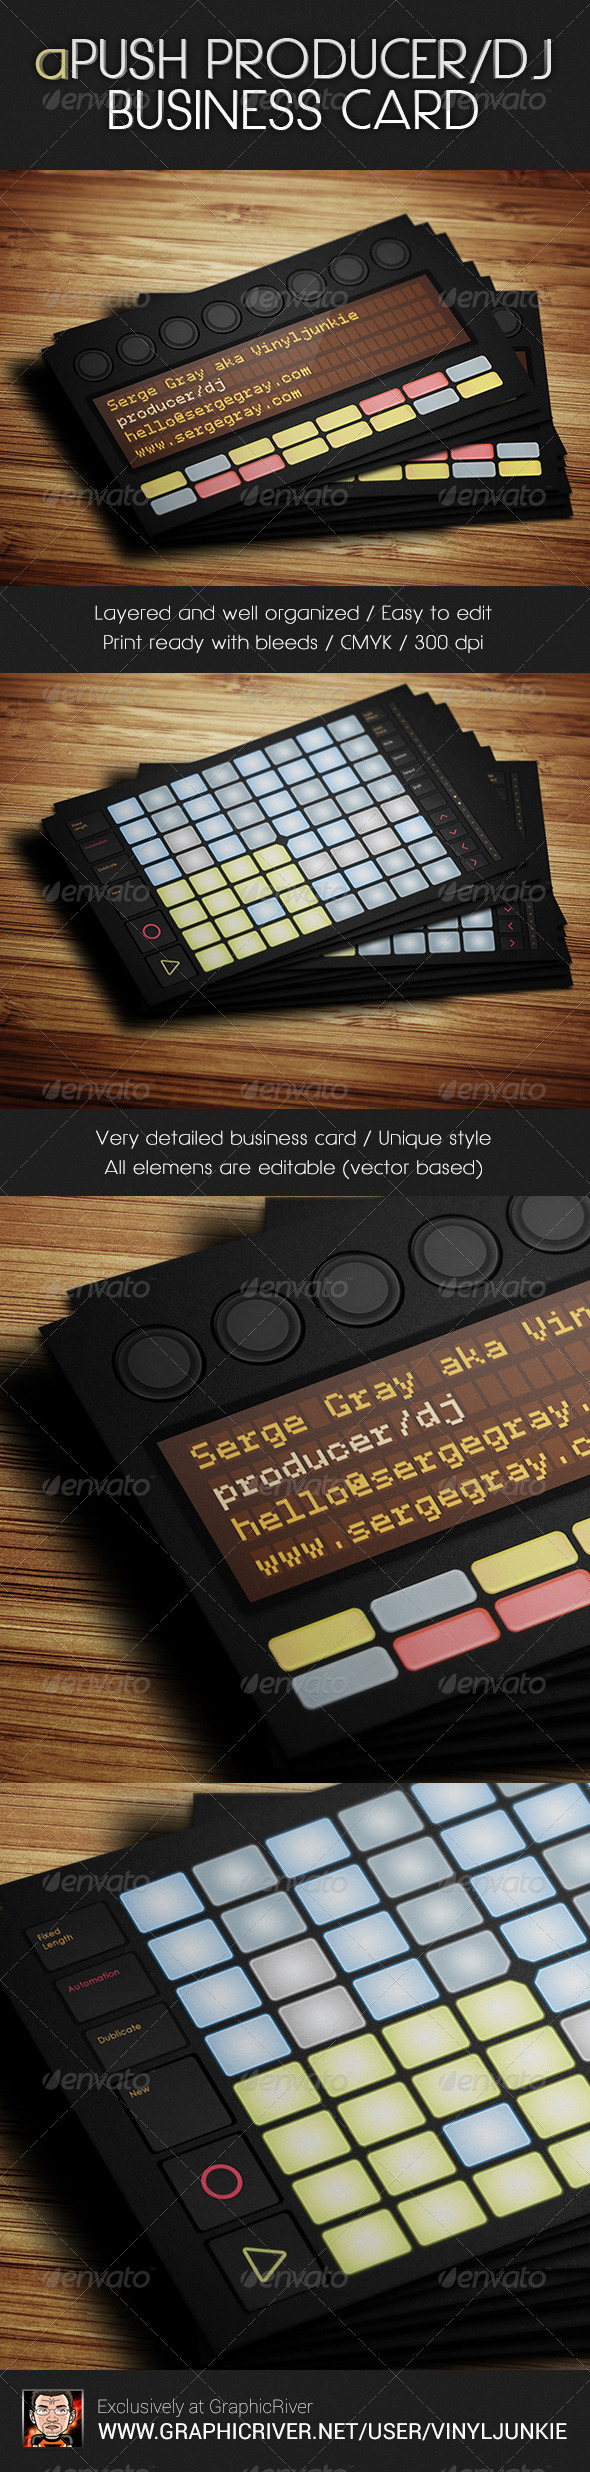 GraphicRiver aPush Producer DJ Business Card 6041414